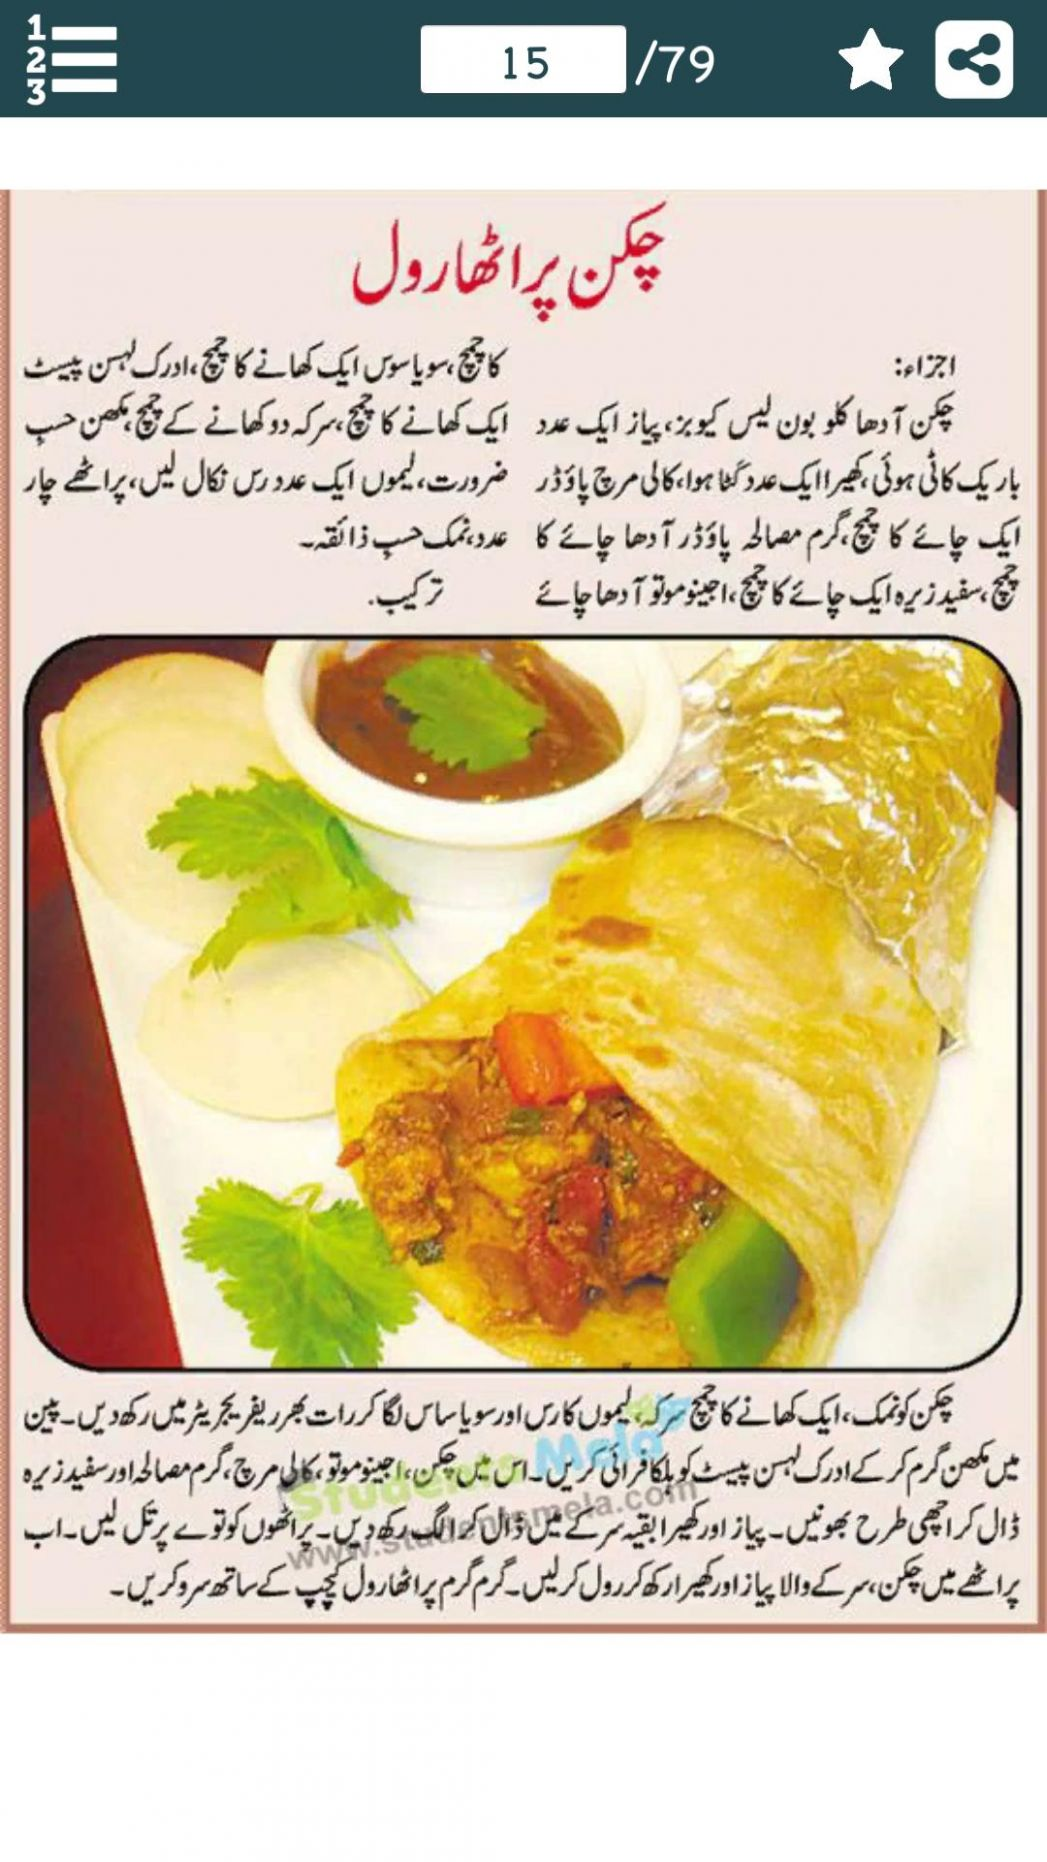 Pakistani Easy Recipes in URDU for Android - APK Download - Recipes Urdu Pakistani